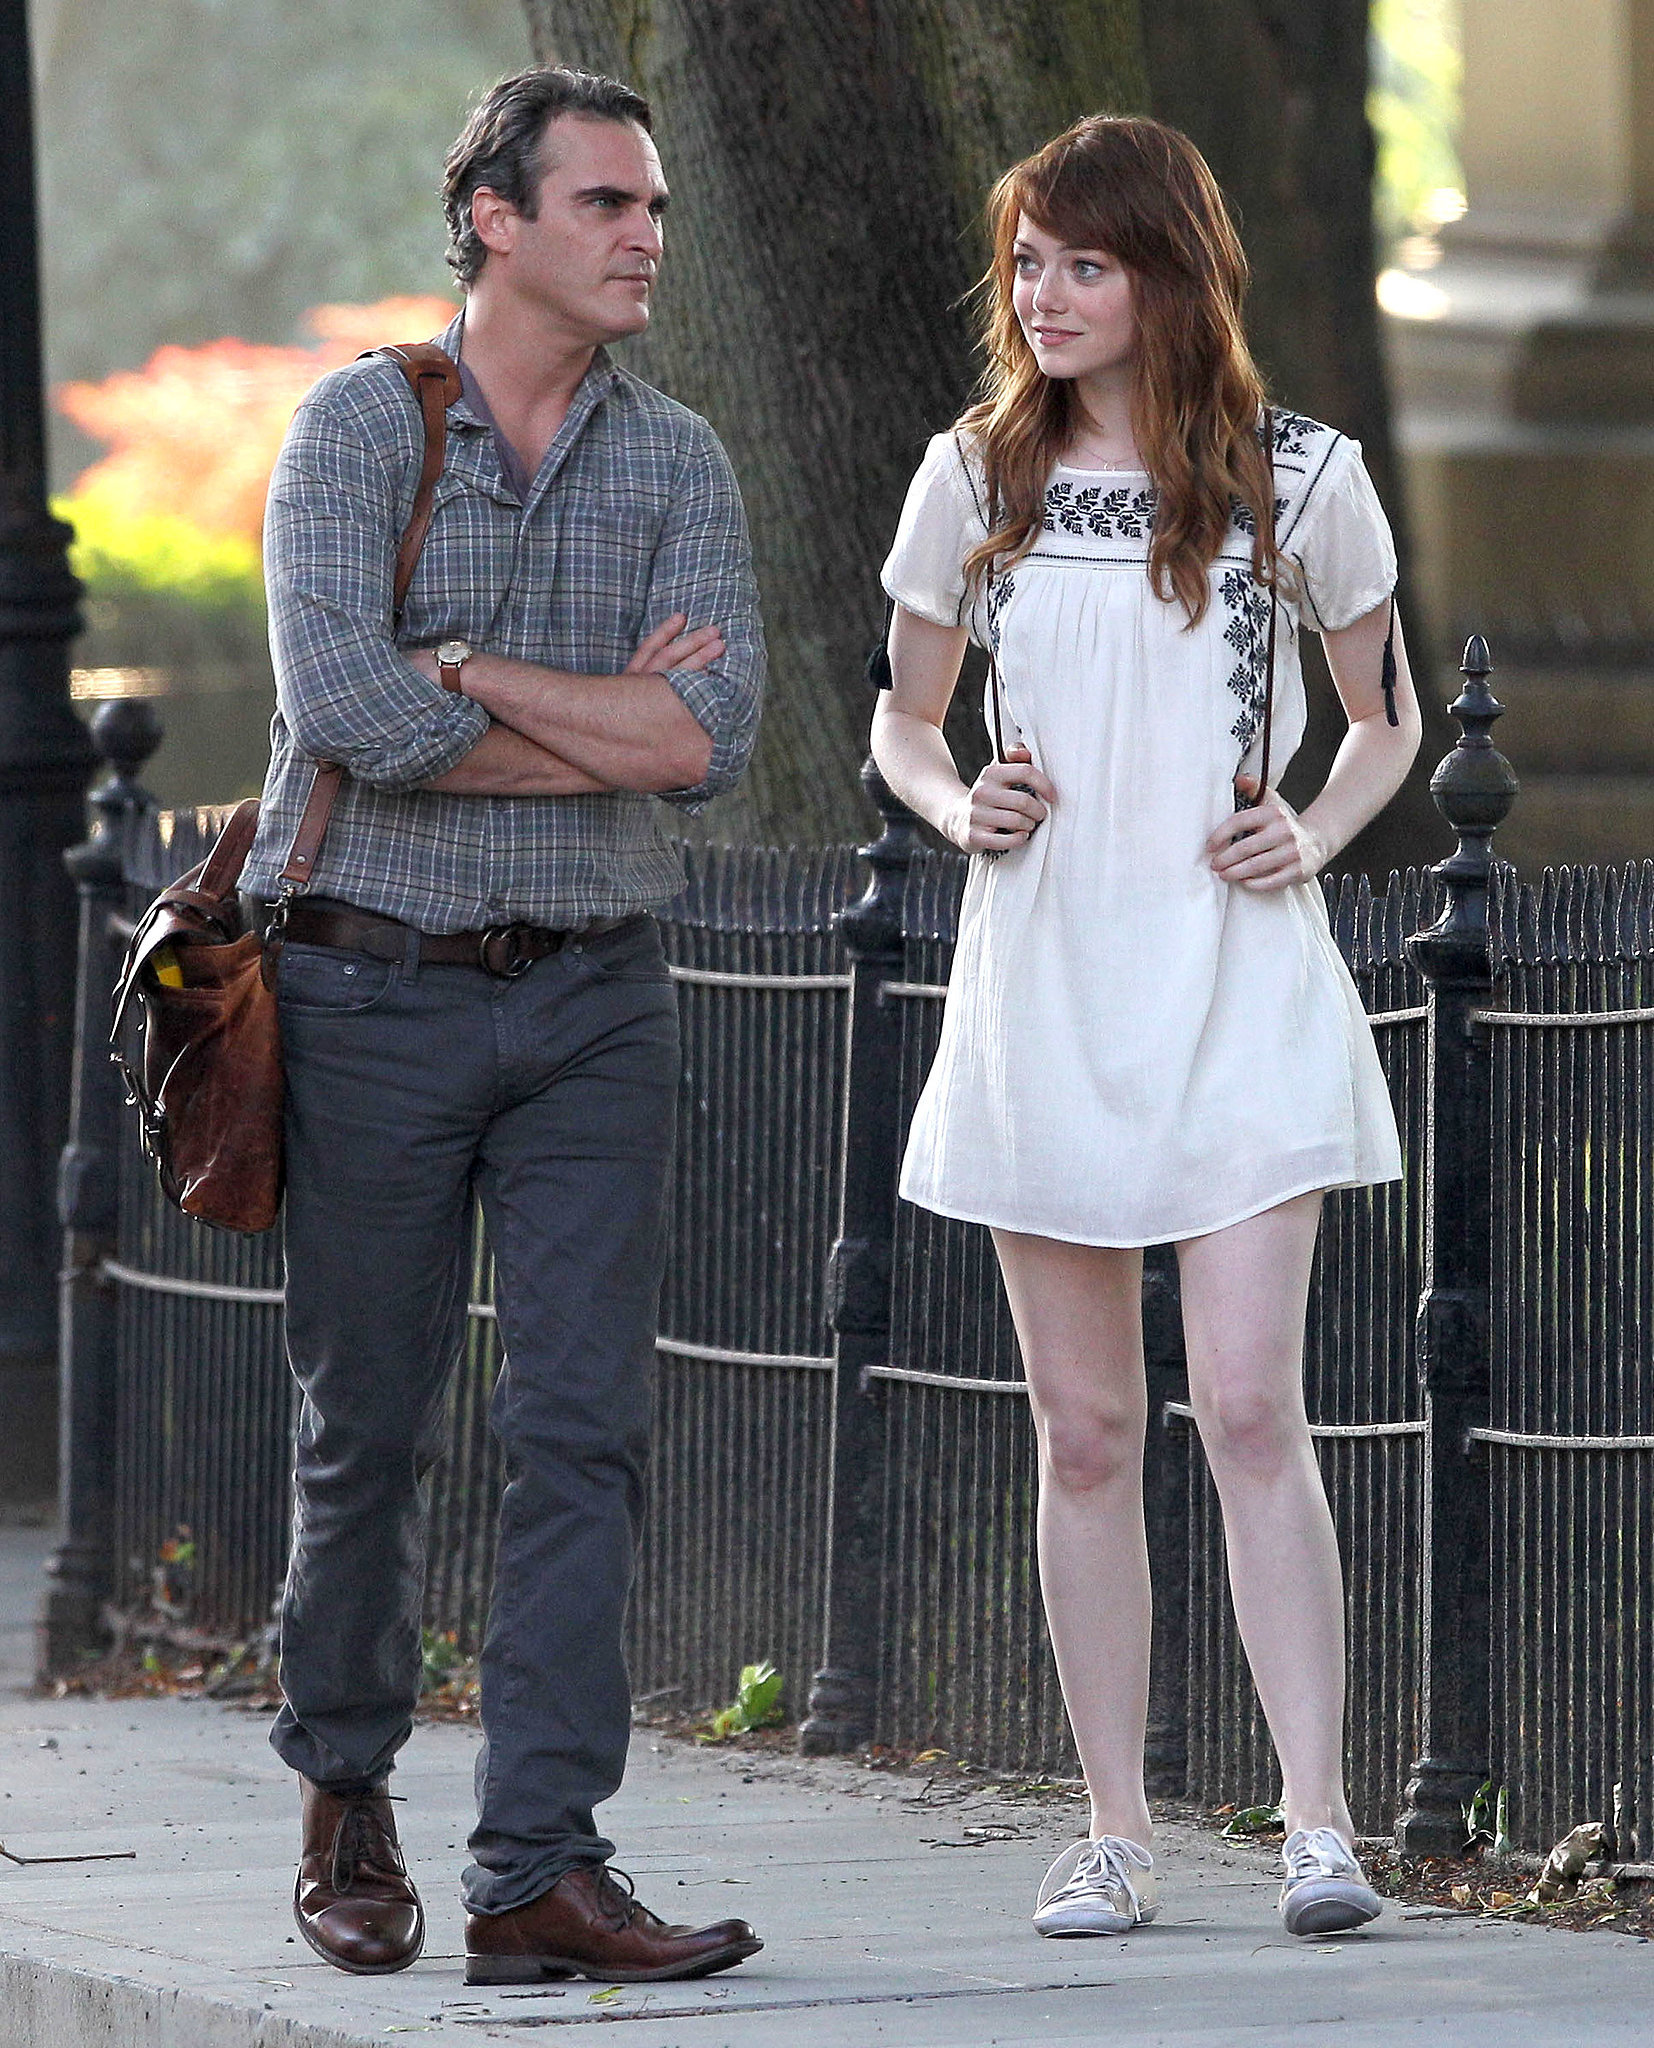 First Look at Emma Stone and Joaquin Phoenix in Woody Allen's Next Film